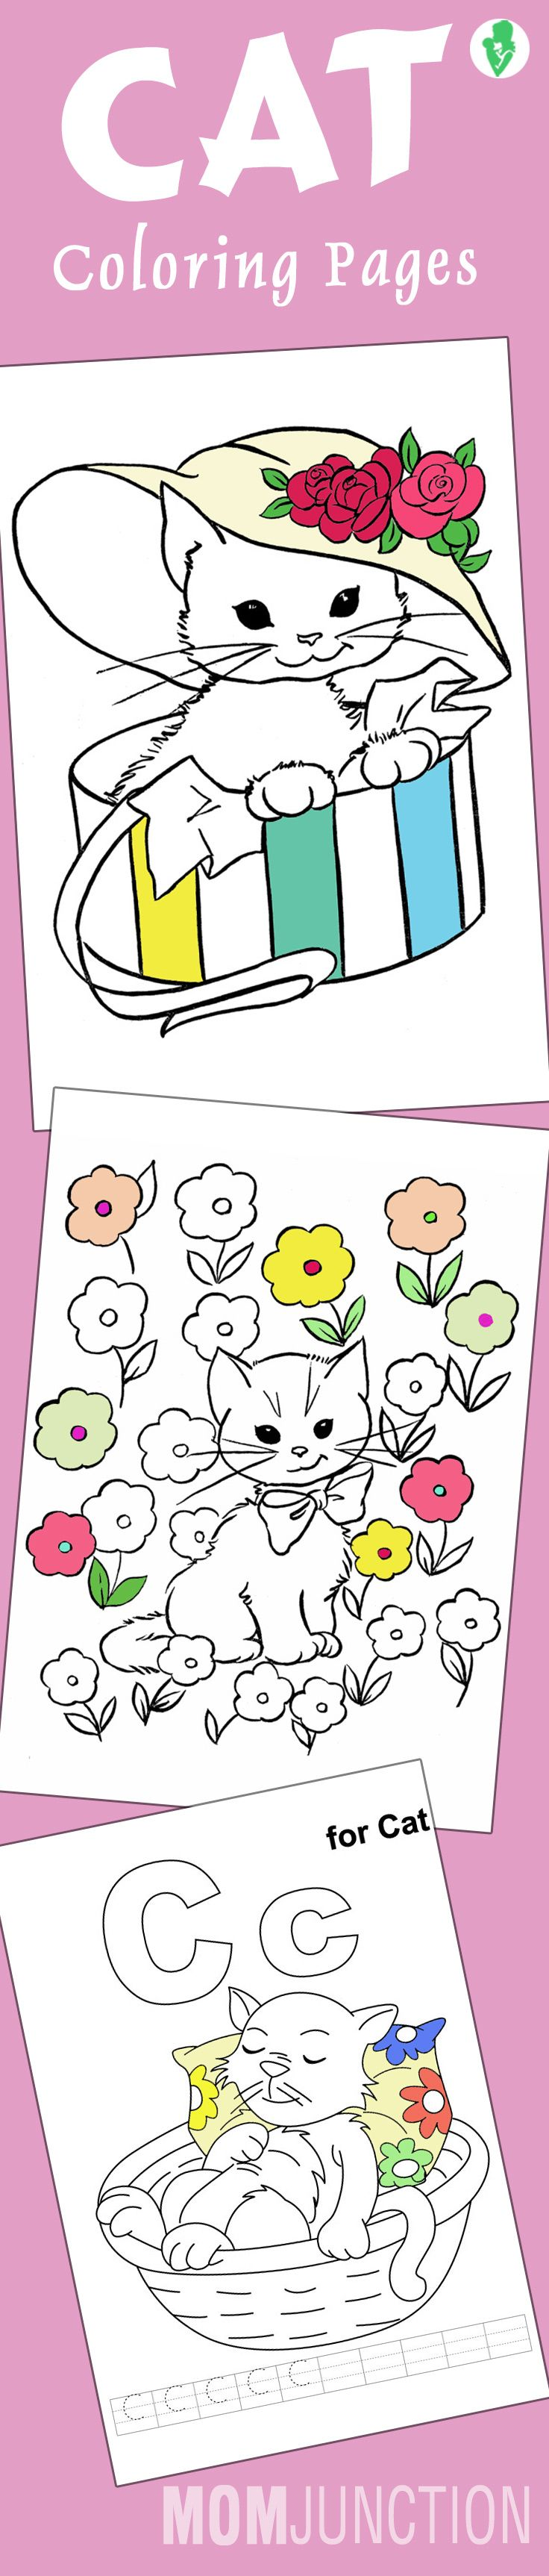 Toddler B Coloring Pages